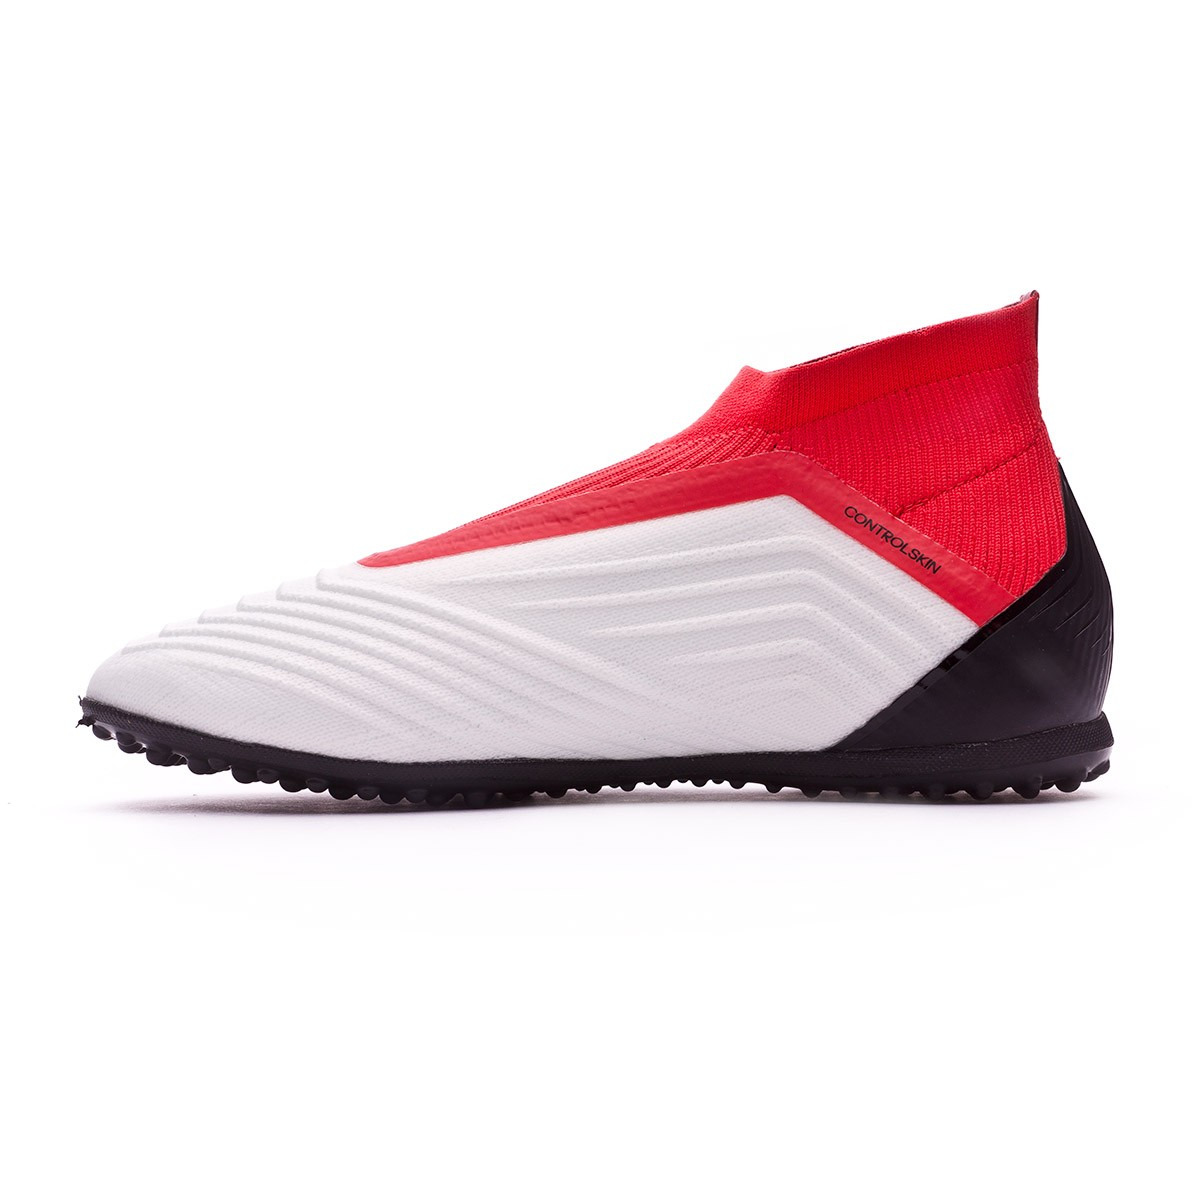 f1856dec4121 Football Boot adidas Kids Predator Tango 18+ Turf White-Core black-Real  coral - Soloporteros es ahora Fútbol Emotion